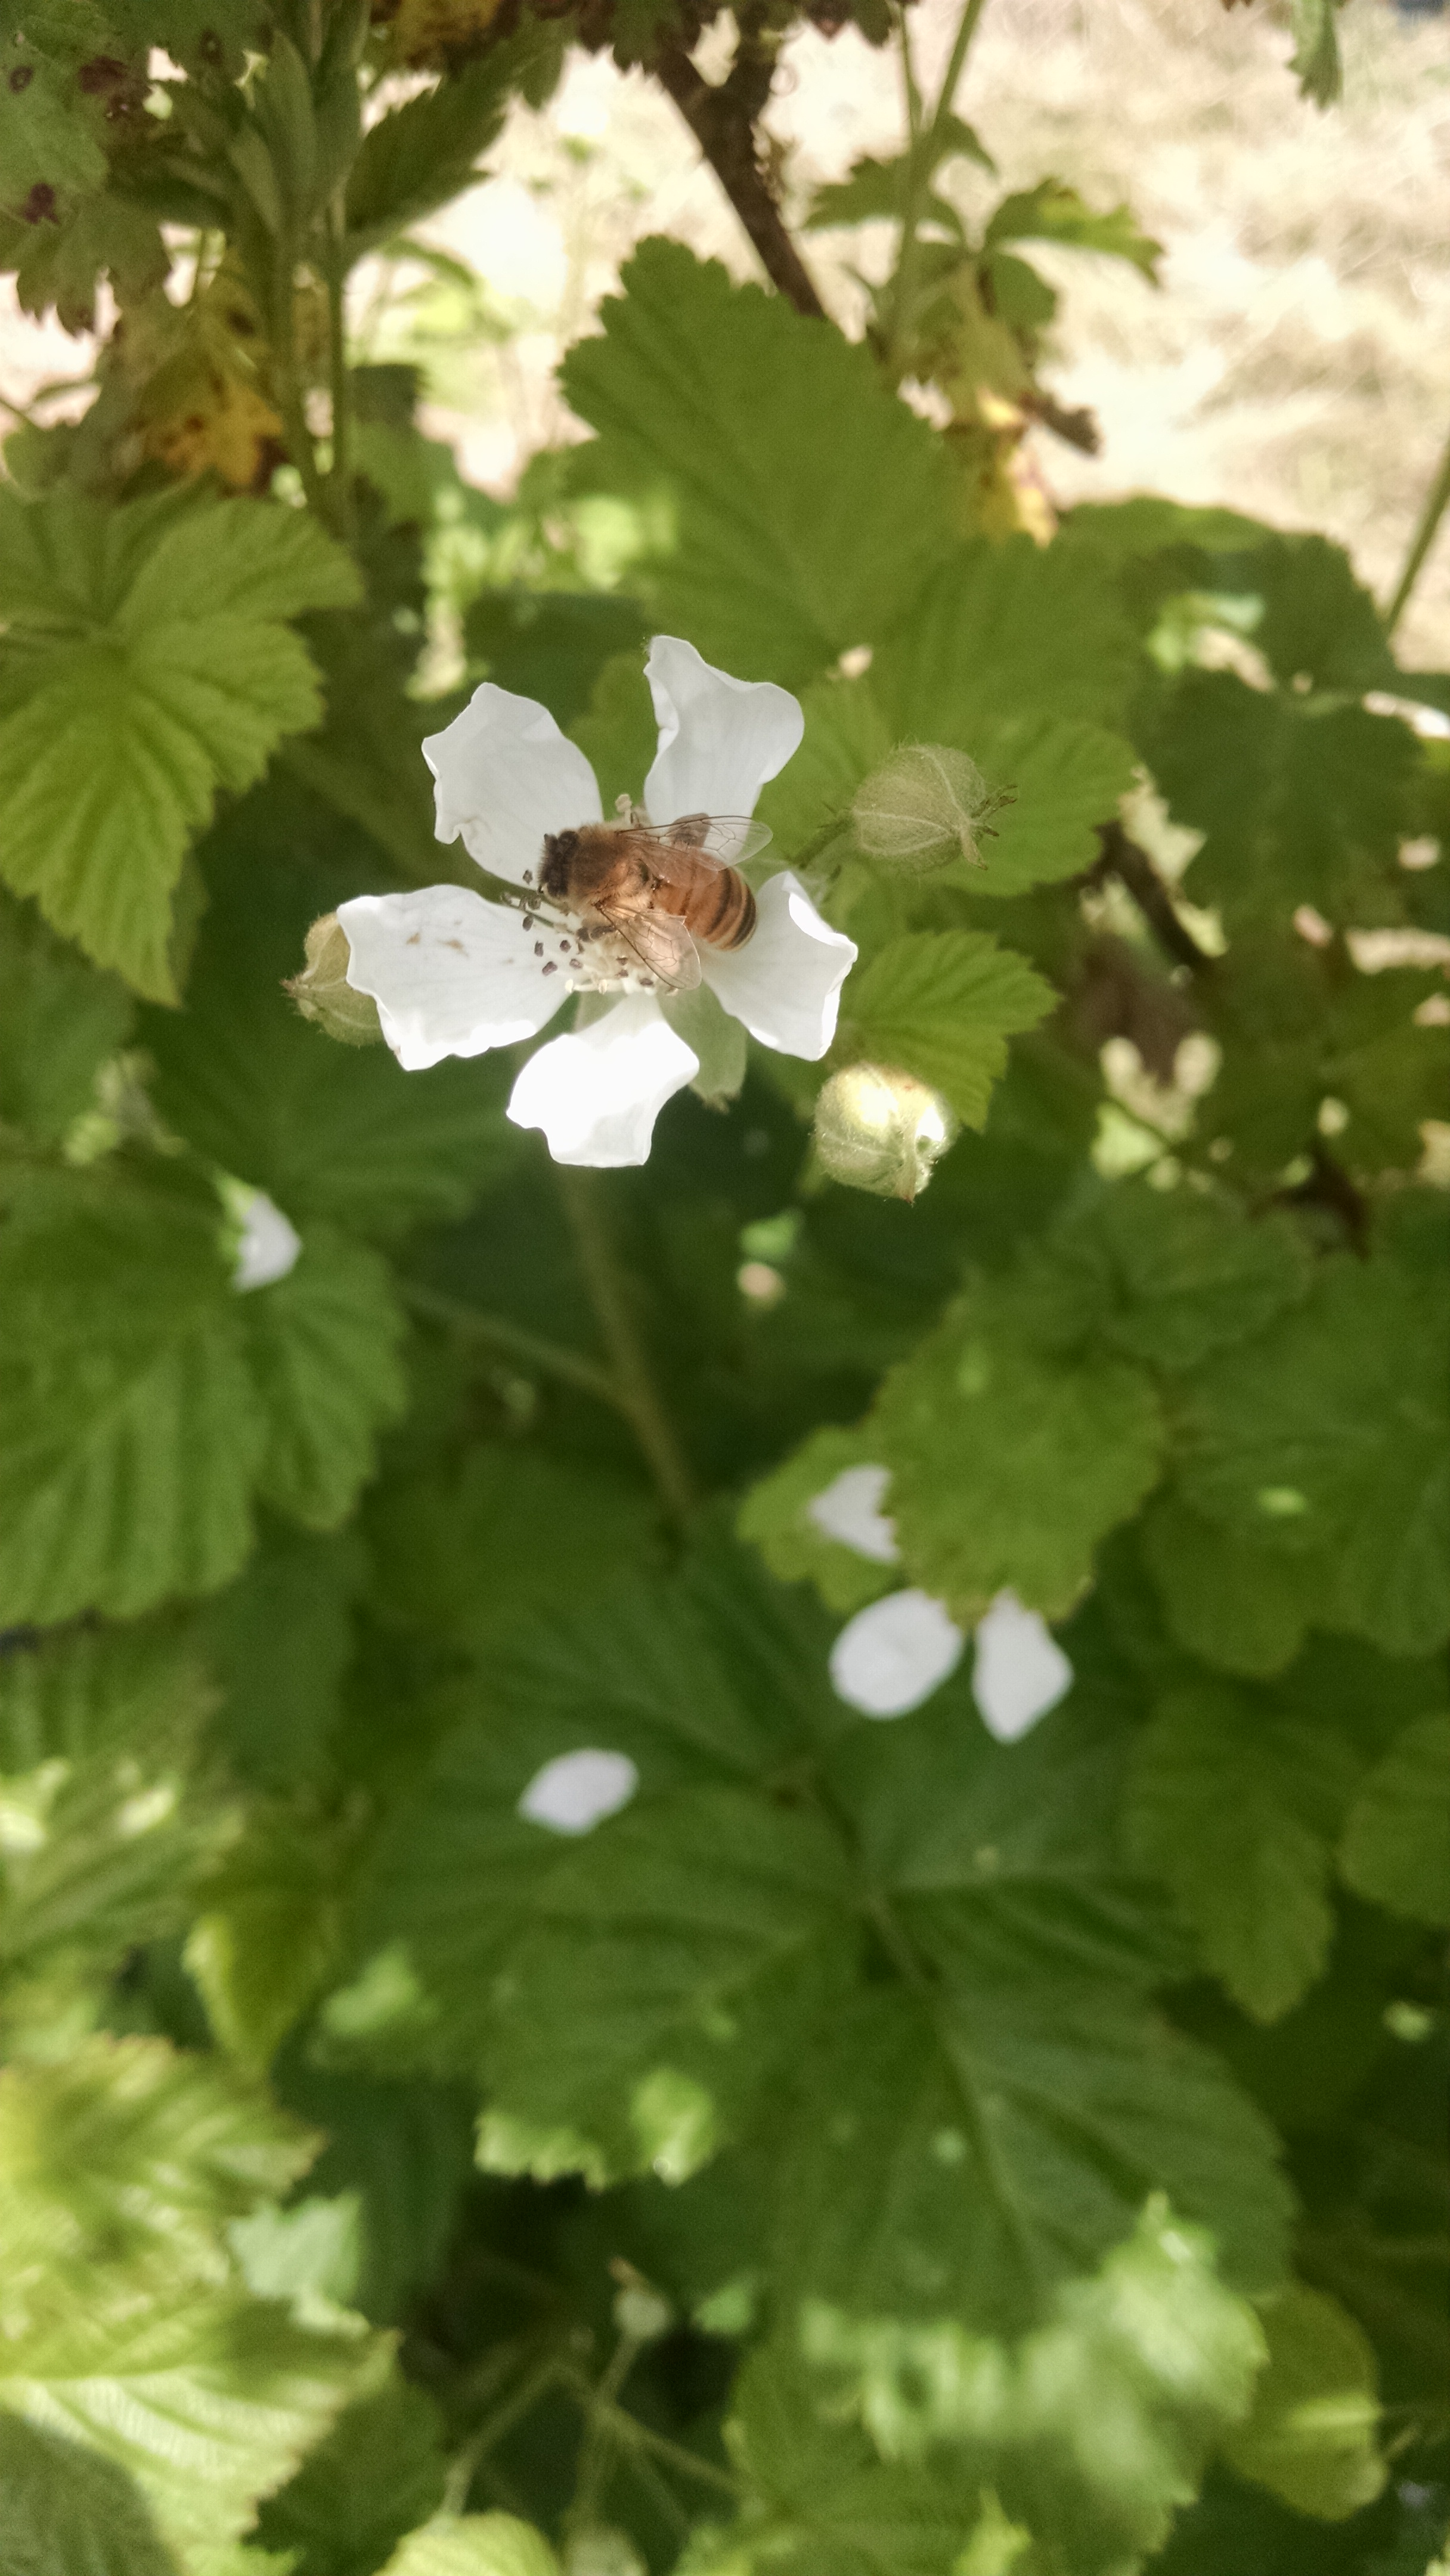 One of our bees pollinating the organic berries at the apiary site